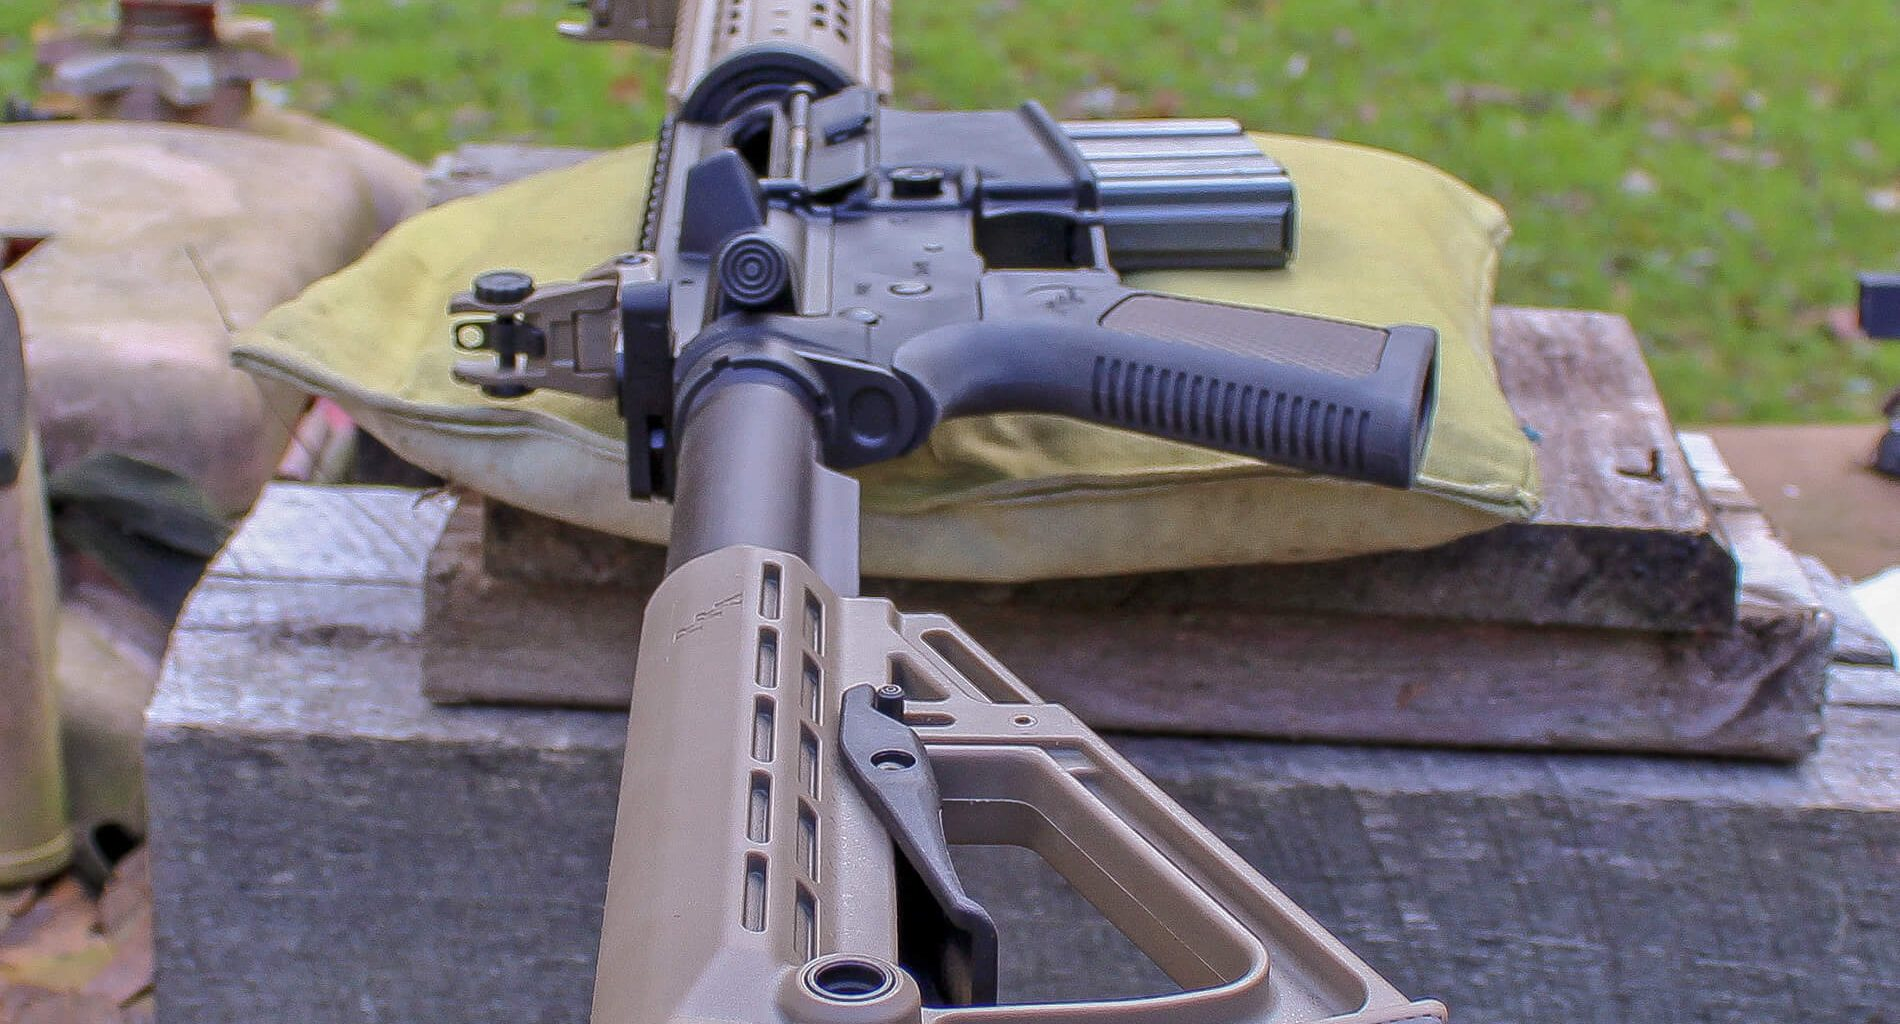 Rock River Arms LAR-15 on bench